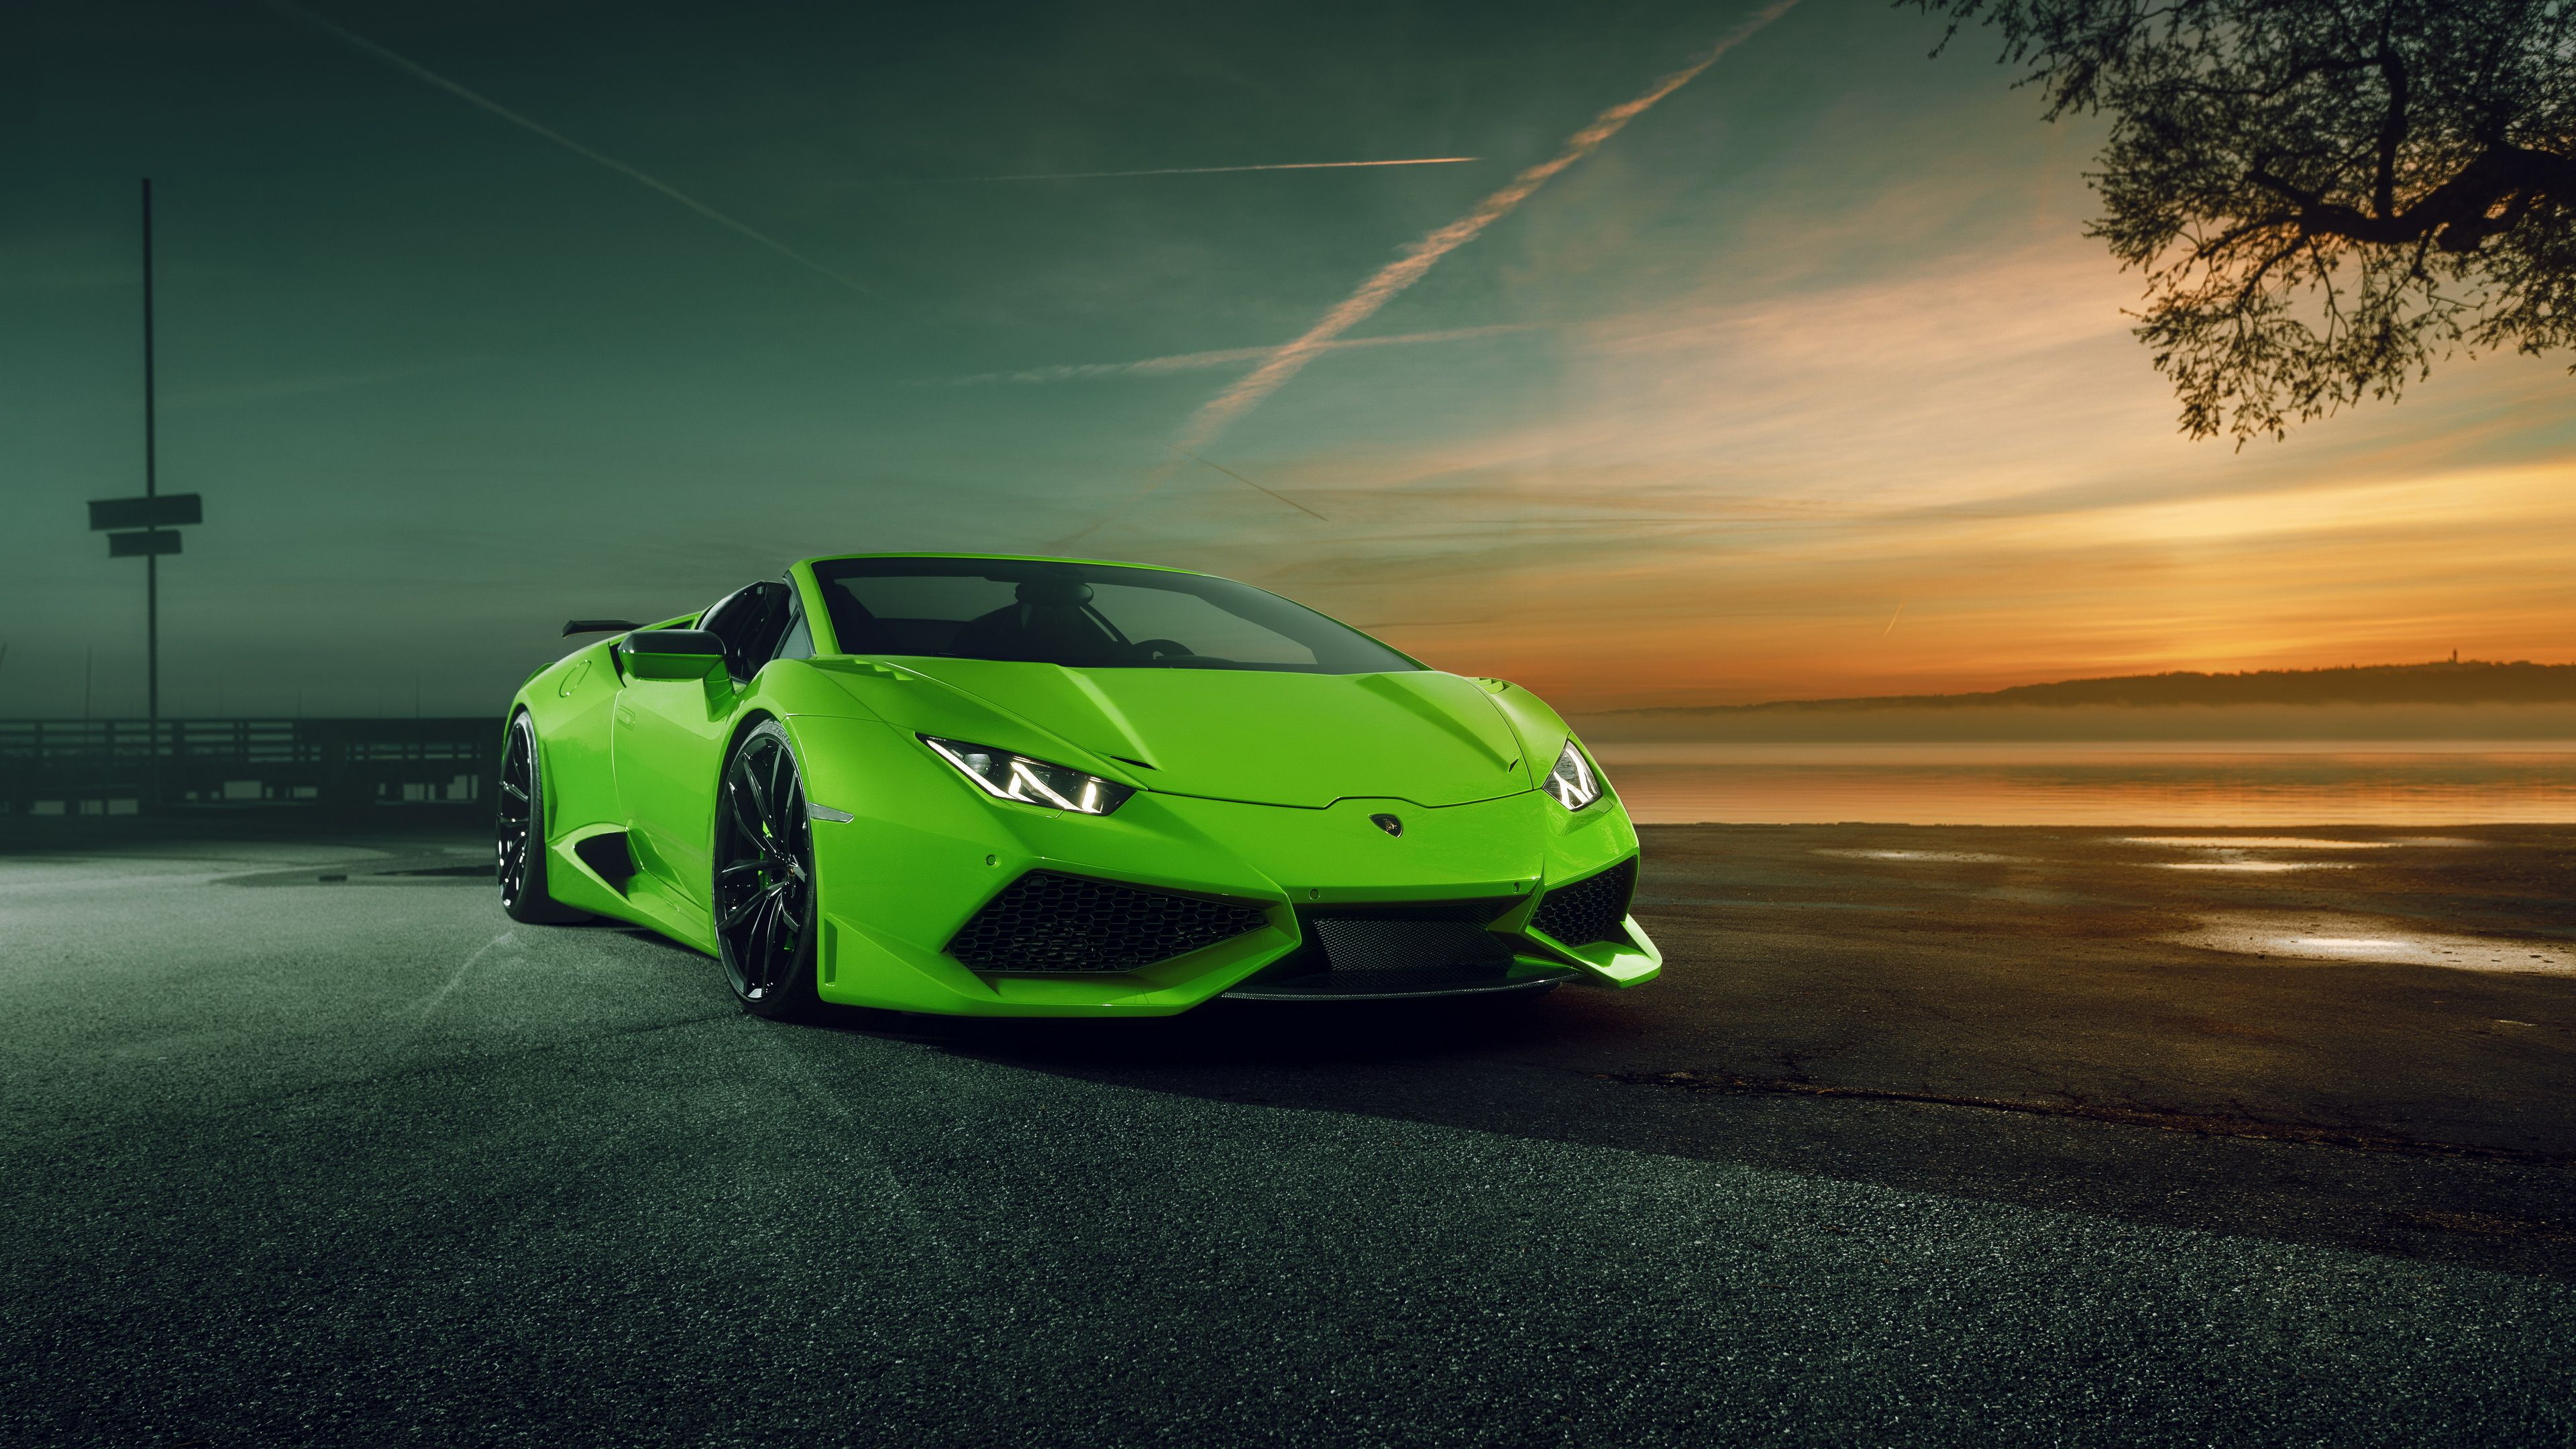 Wallpaper 4k Novitec Torado Lamborghini Huracan 4k 4k Wallpapers 5k Wallpapers Cars Wallpapers Hd Wallpapers Lamborghini Huracan Wallpapers Lamborghini Wal